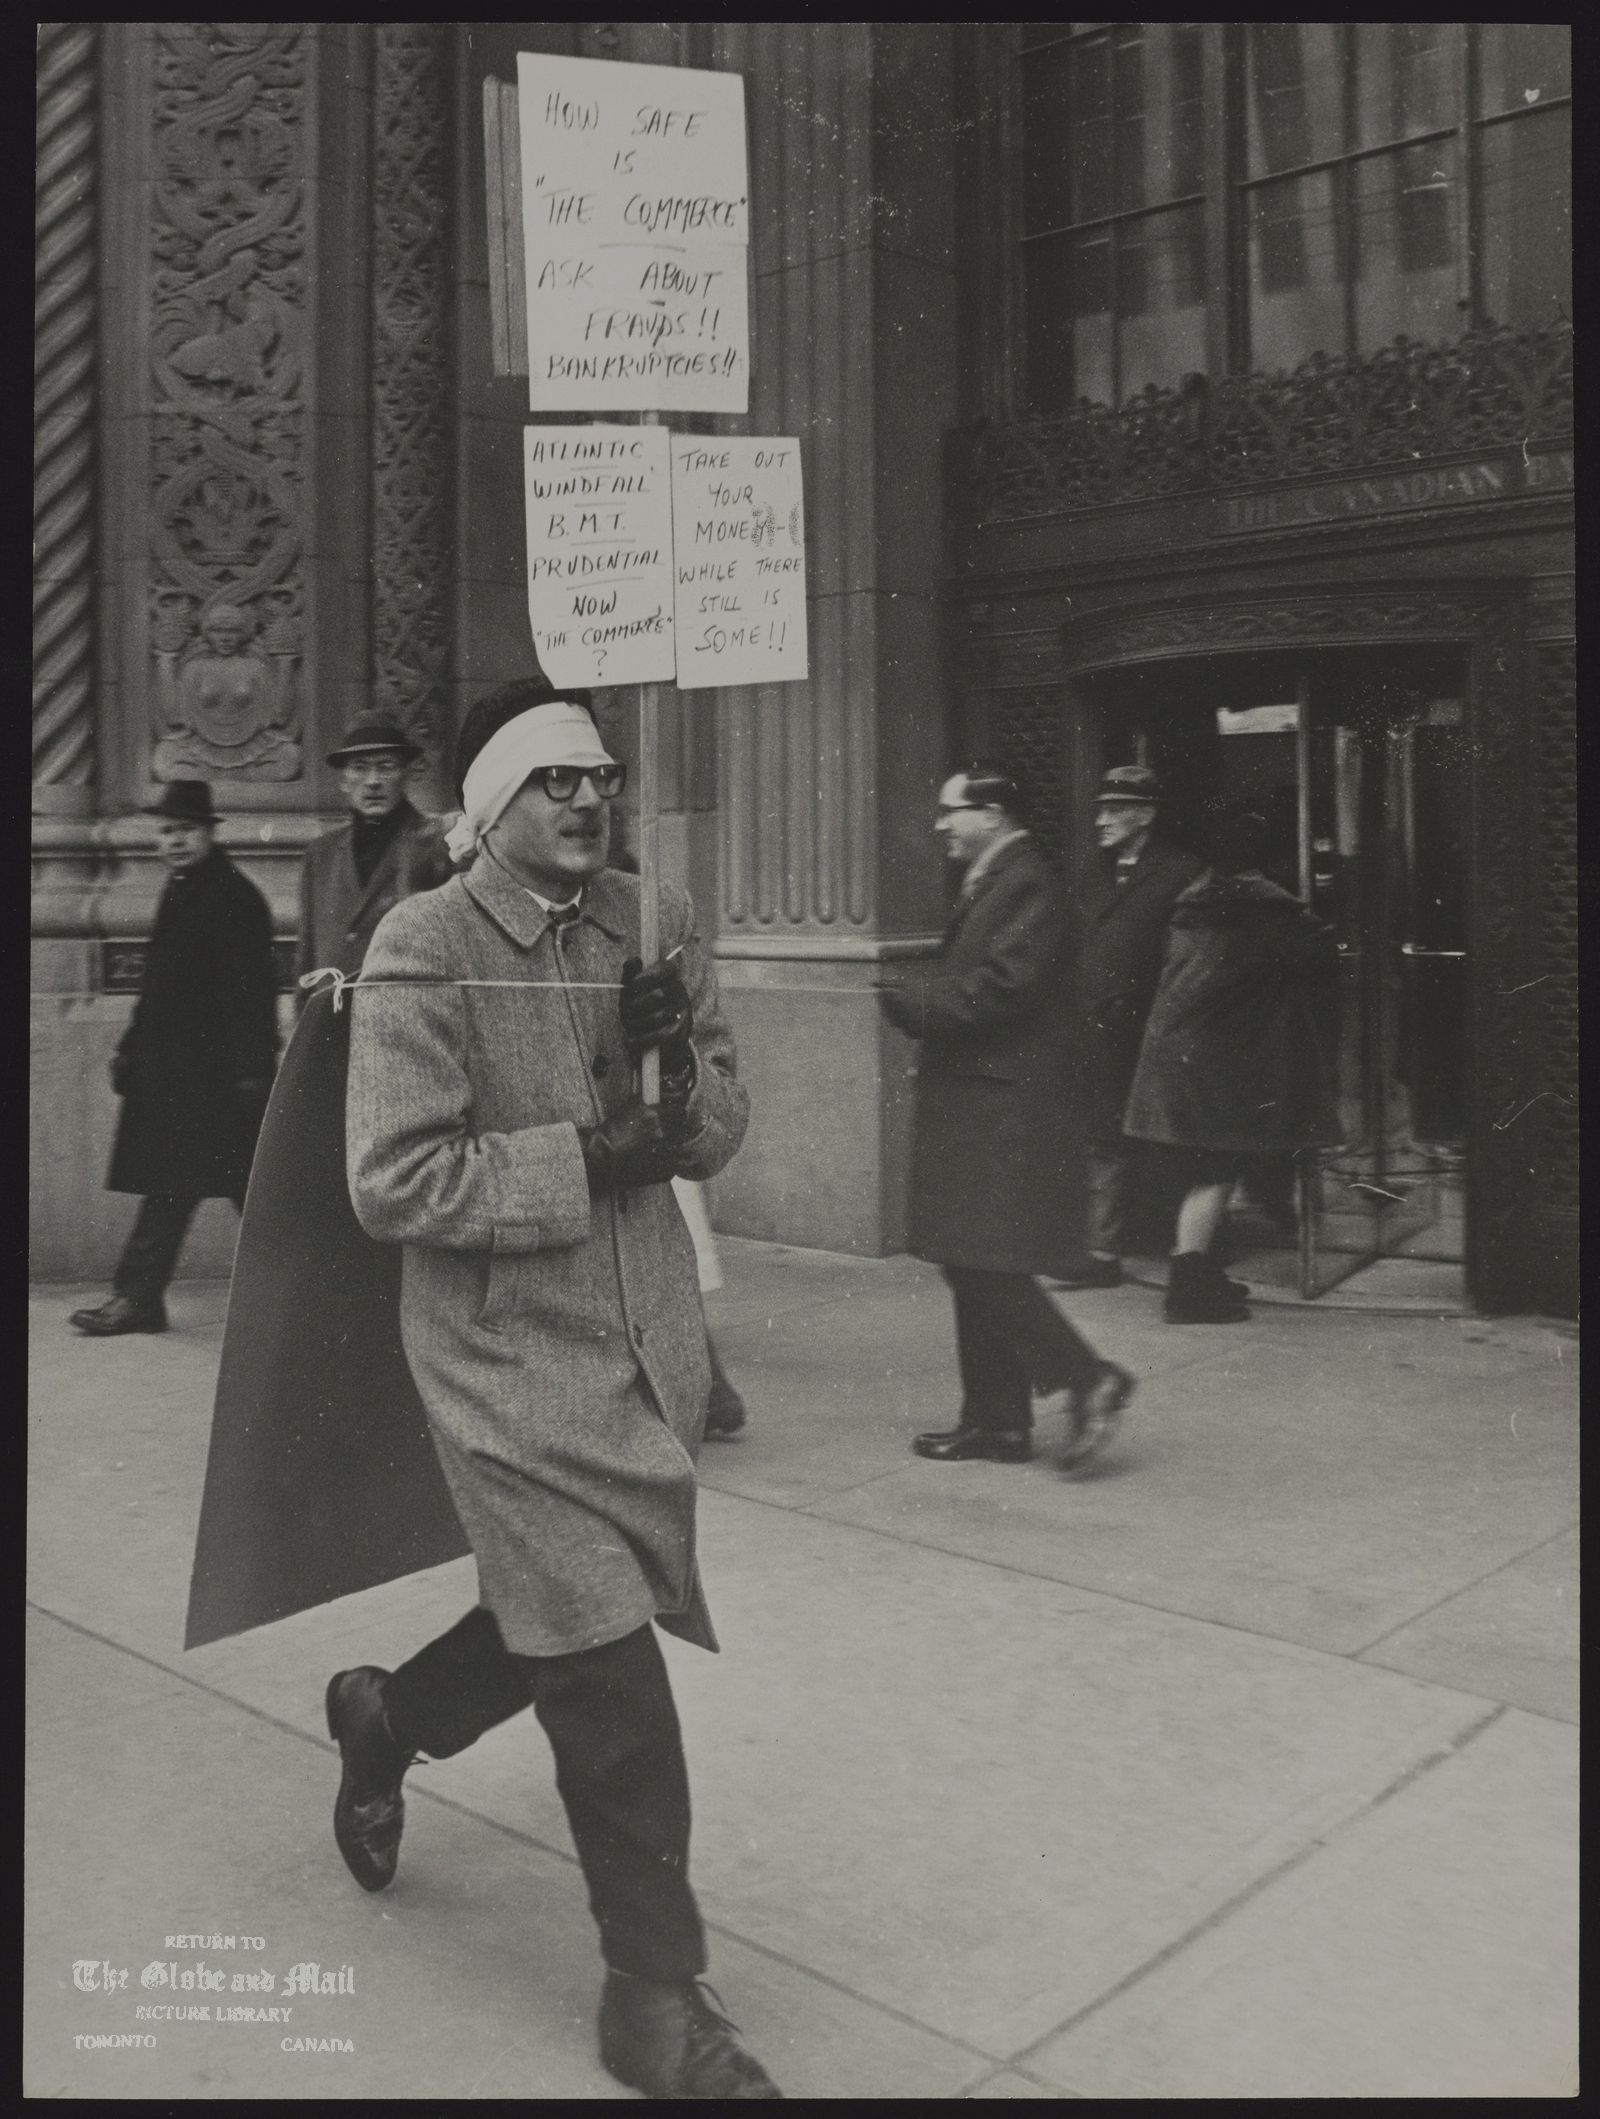 The notes transcribed from the back of this photograph are as follows: Toronto. Accountant [protesting against Bank of Commerce]